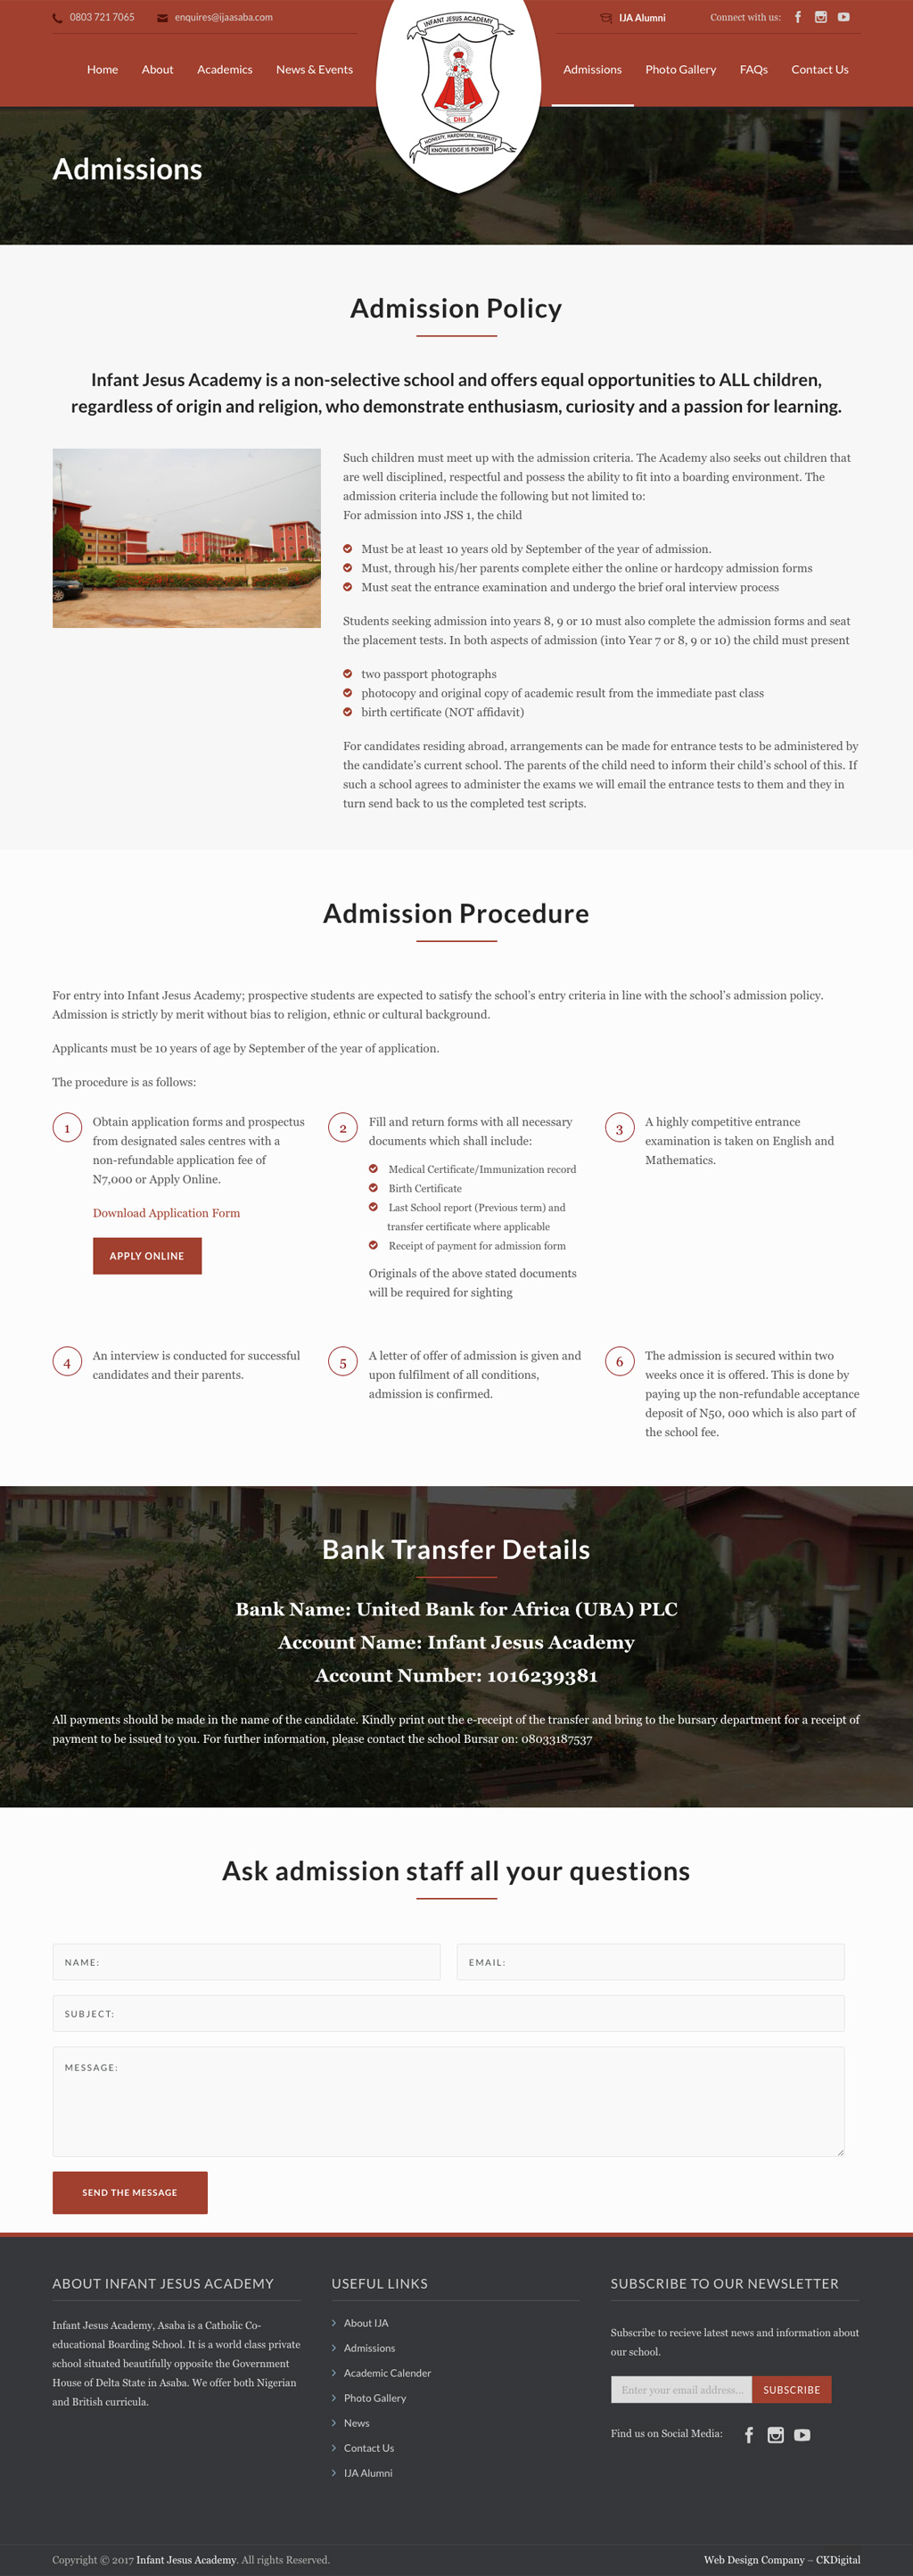 Admissions Page - Infant Jesus Academy Website Design